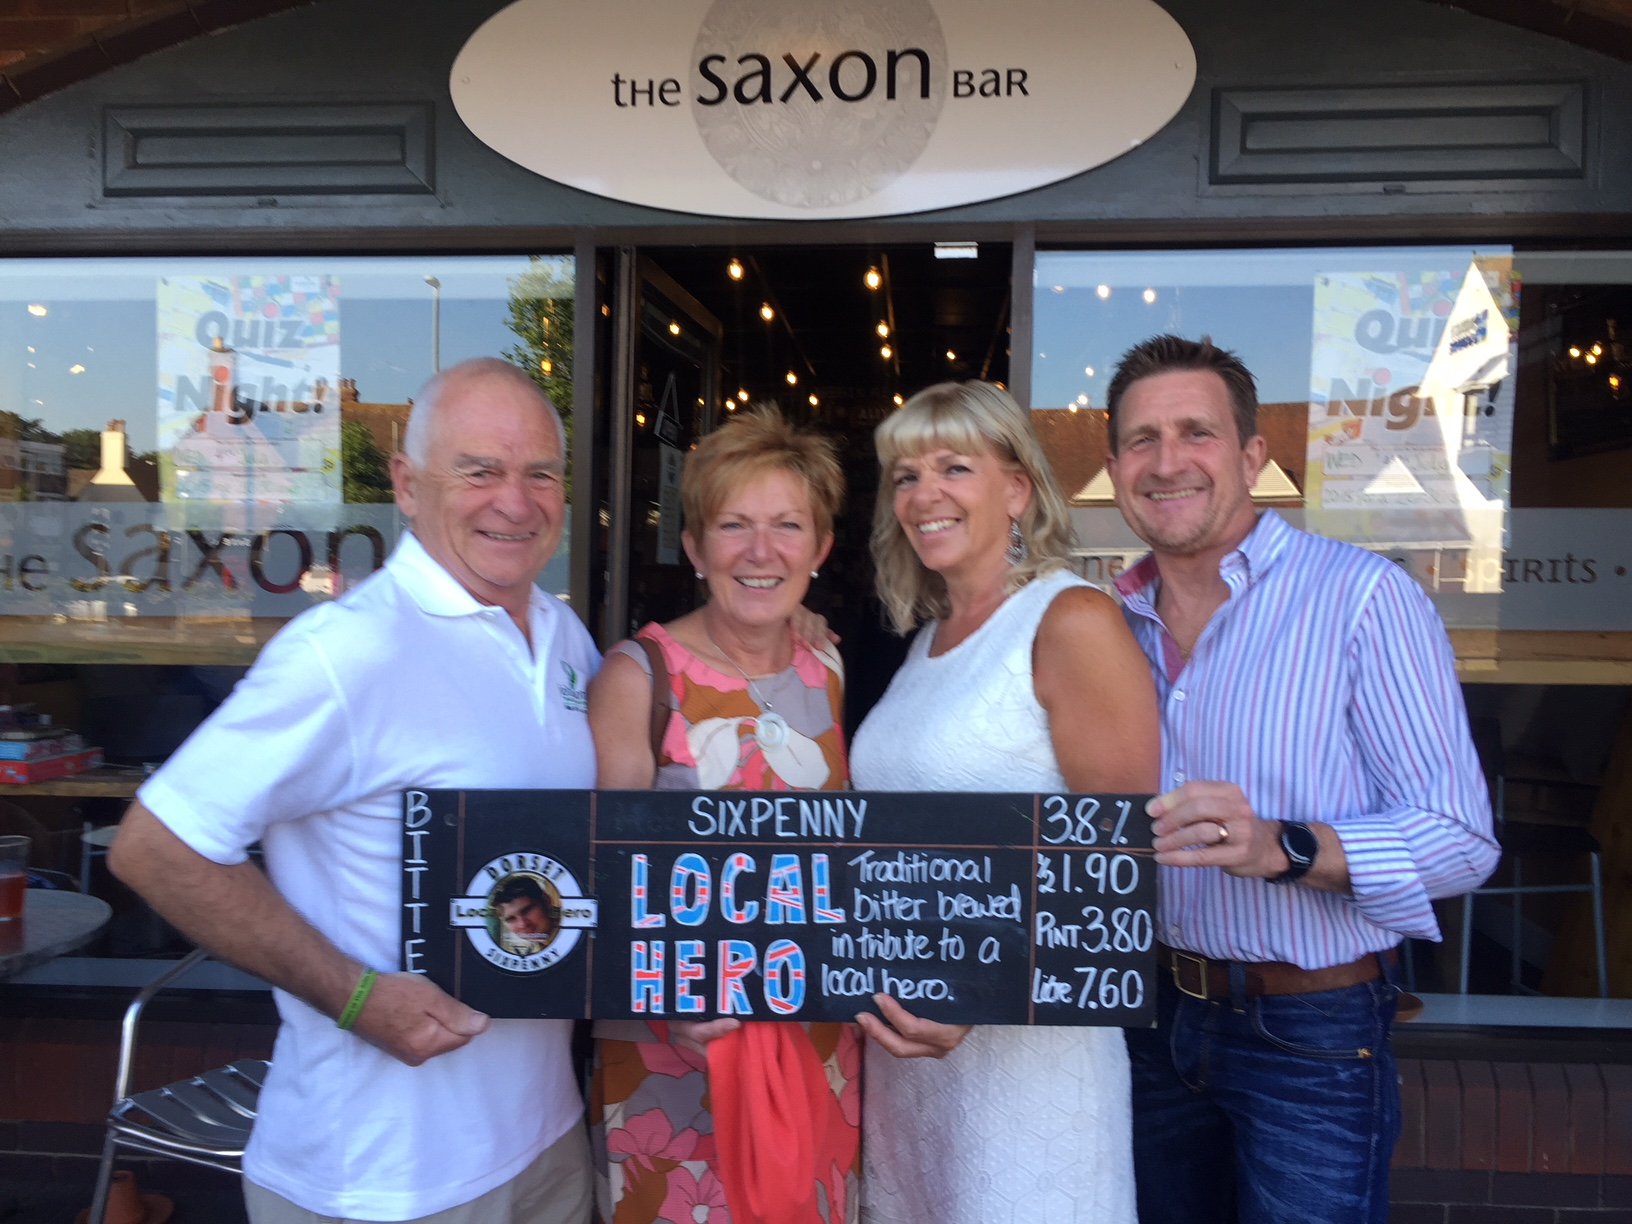 Lee & juliette price (R) with Pete and Linda thornton at the launch of local hero ale